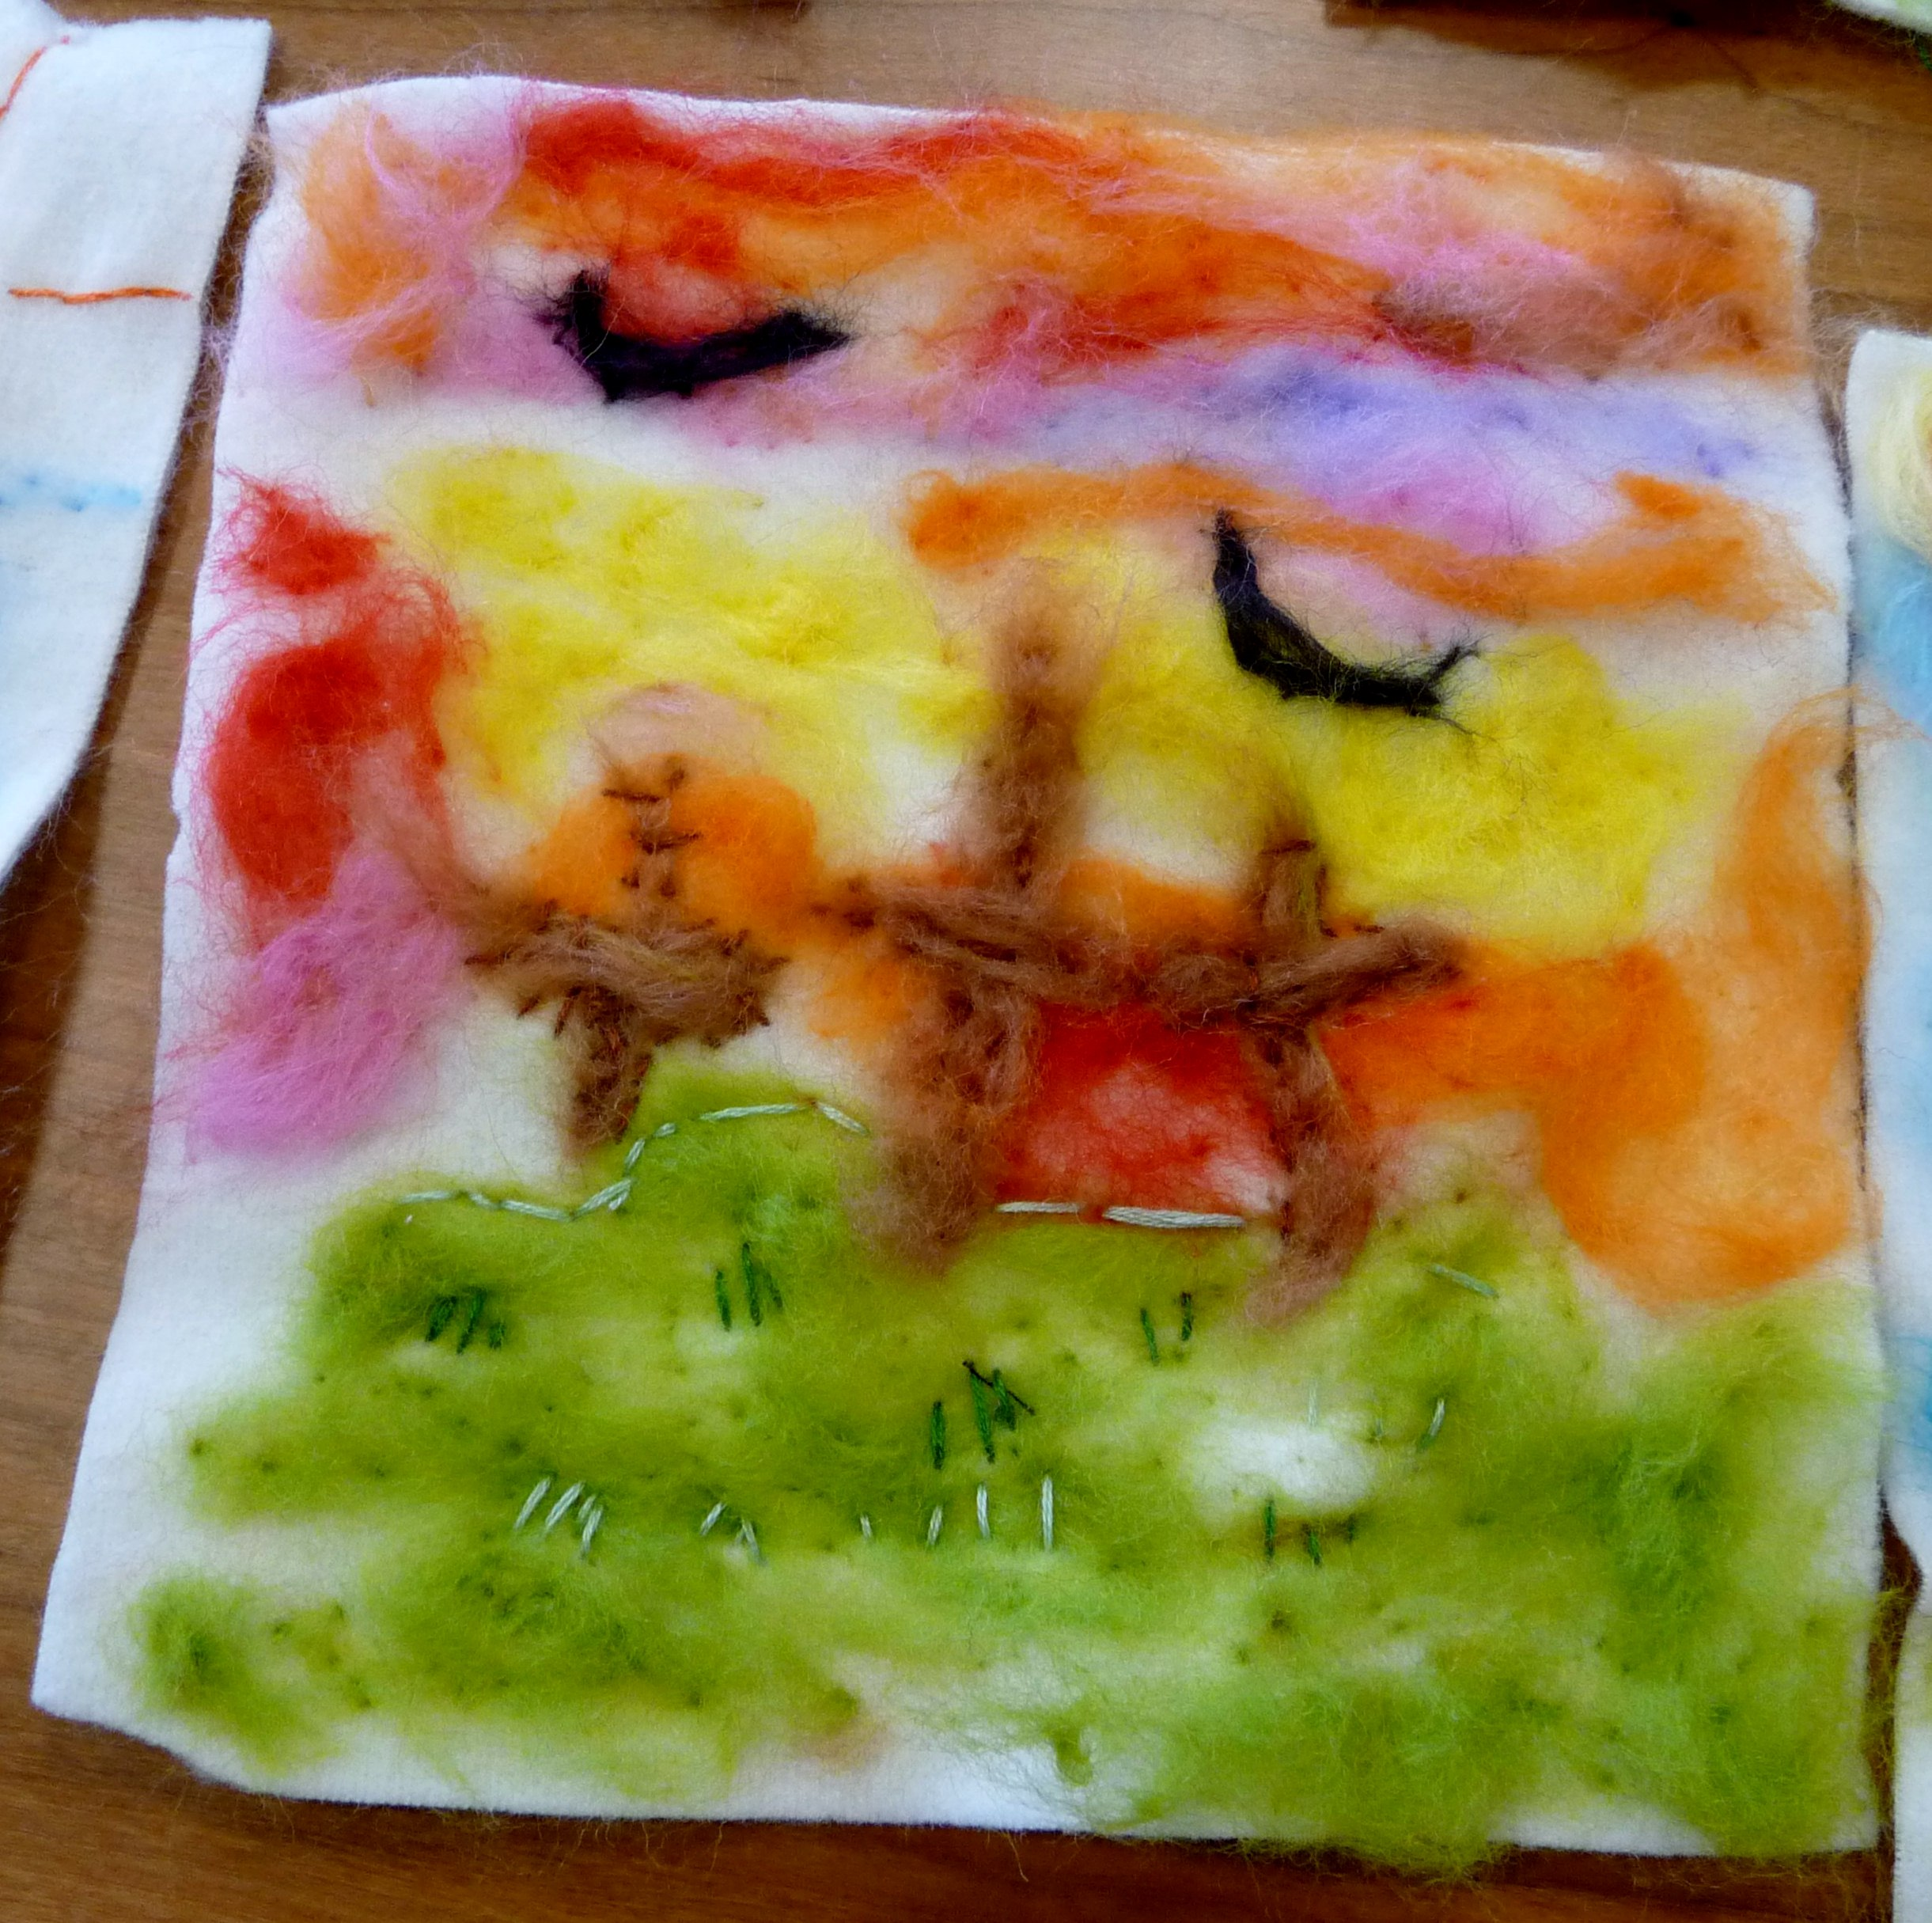 YE group May 2015. This is Grace's completed needlefelted landscape